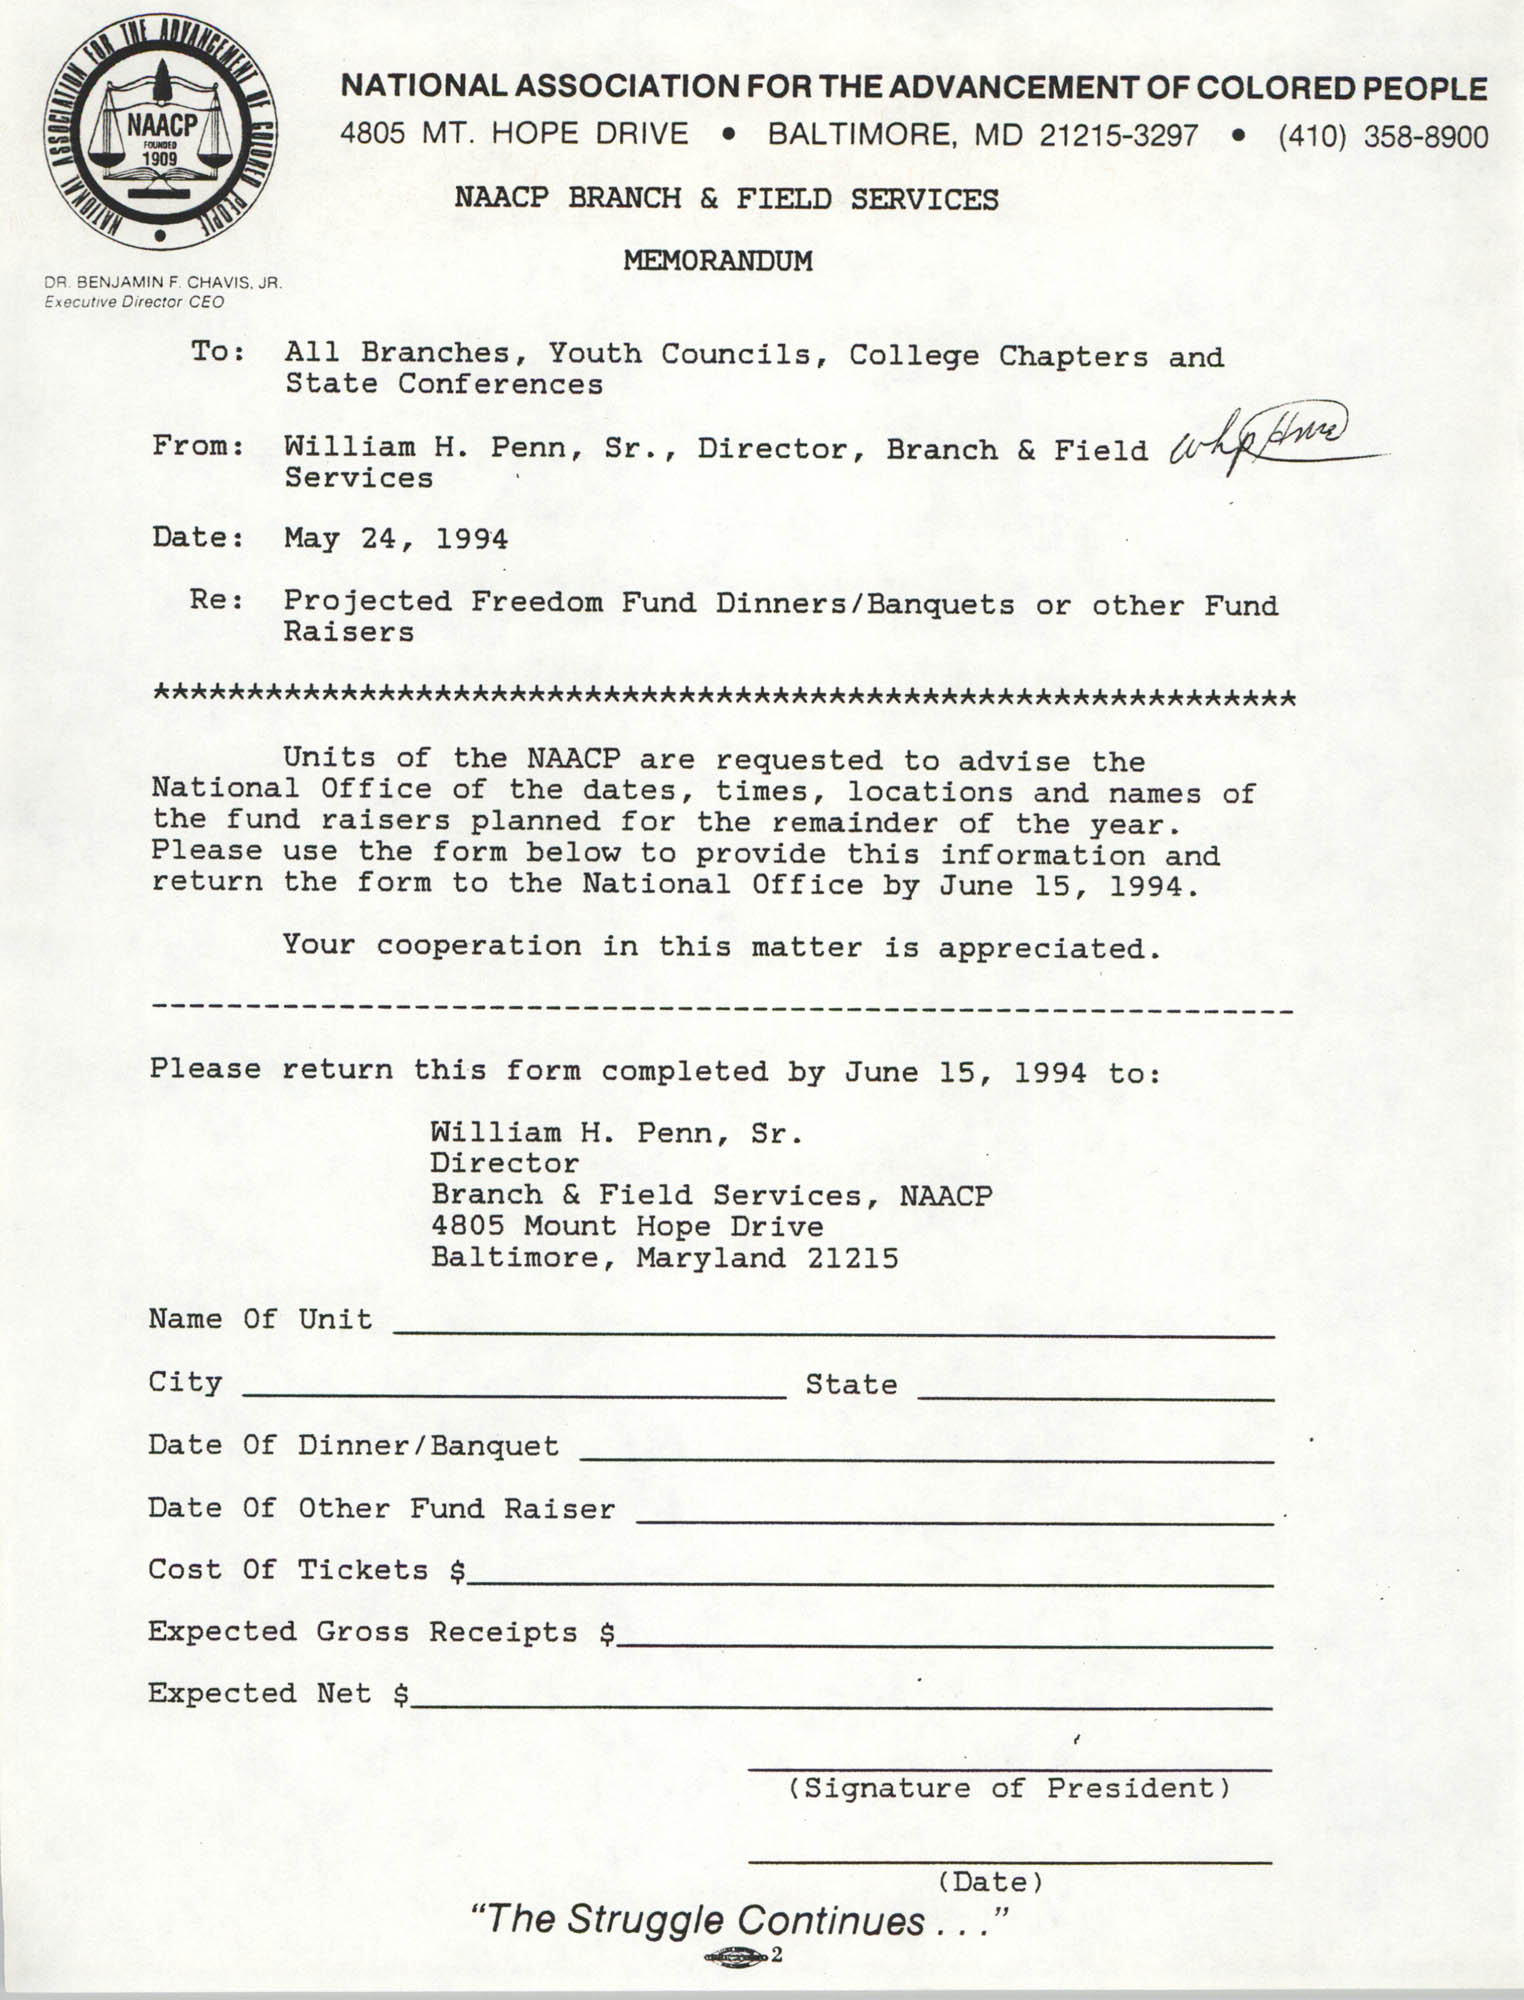 Memorandum, William H. Penn, Sr., May 24, 1994